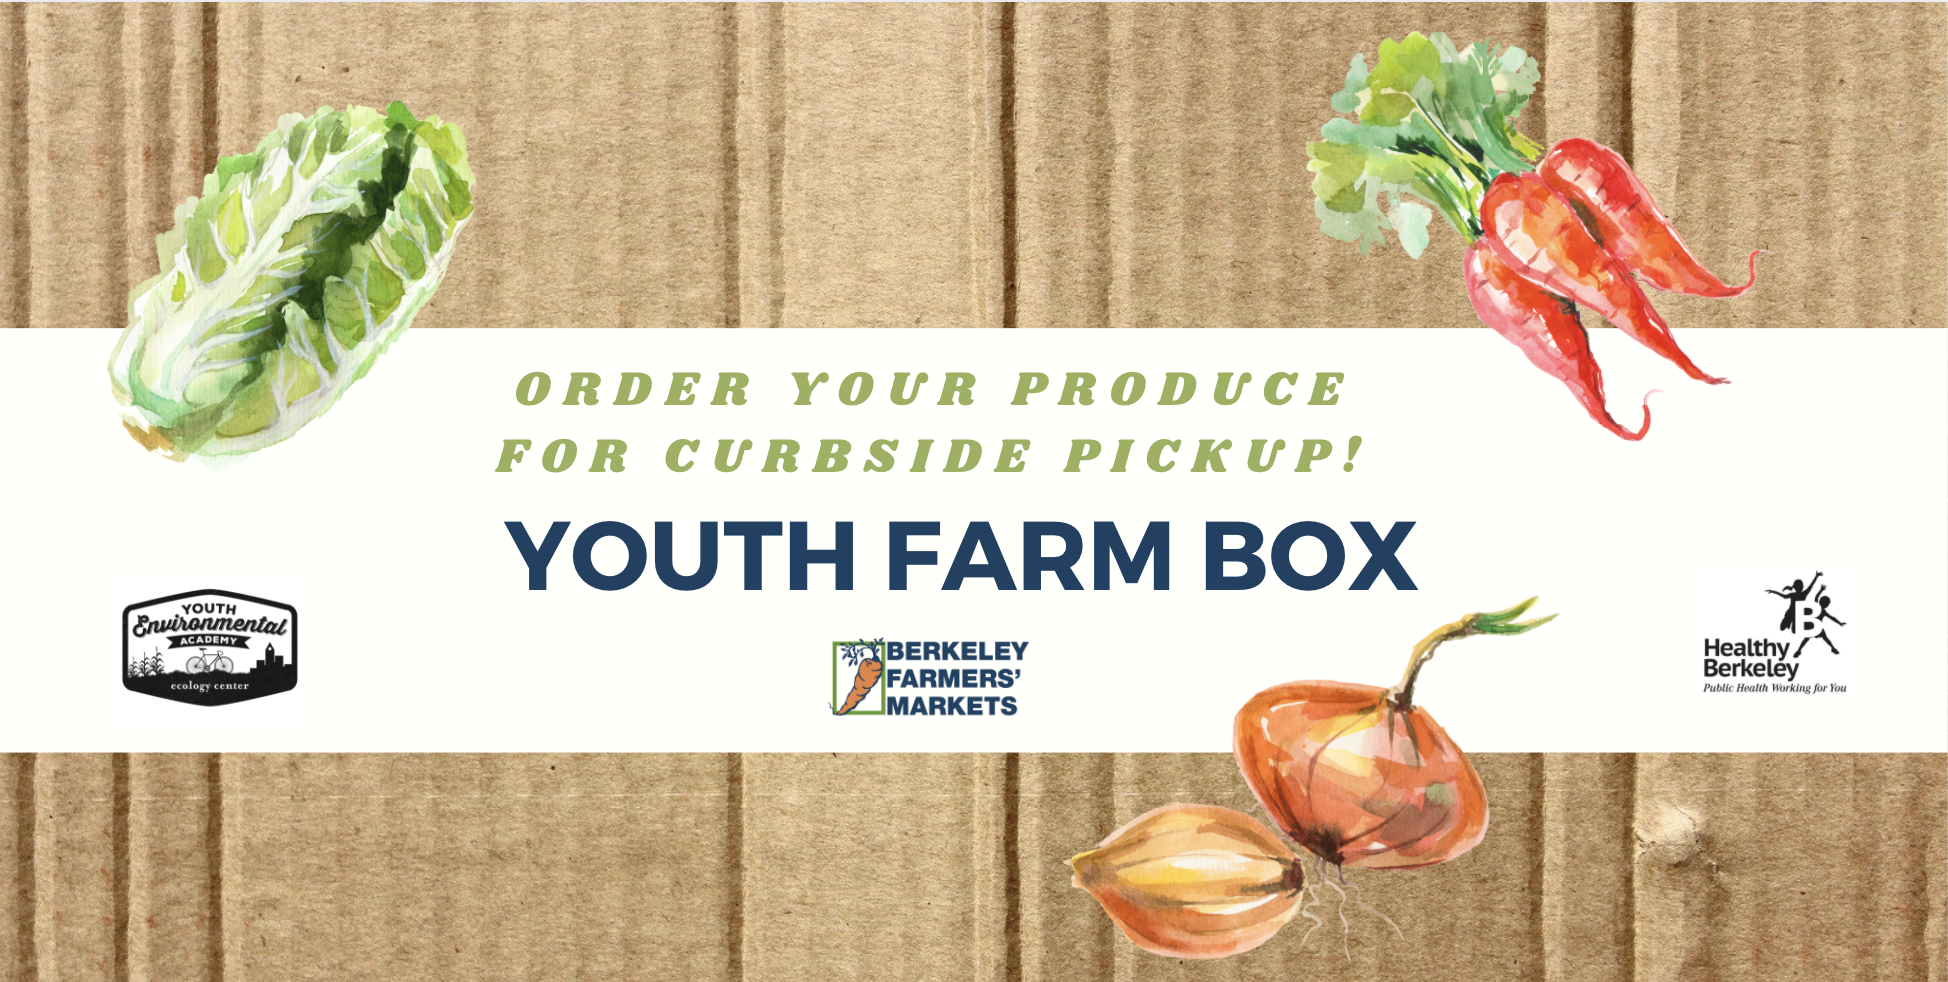 Order a produce box for curbside pickup!